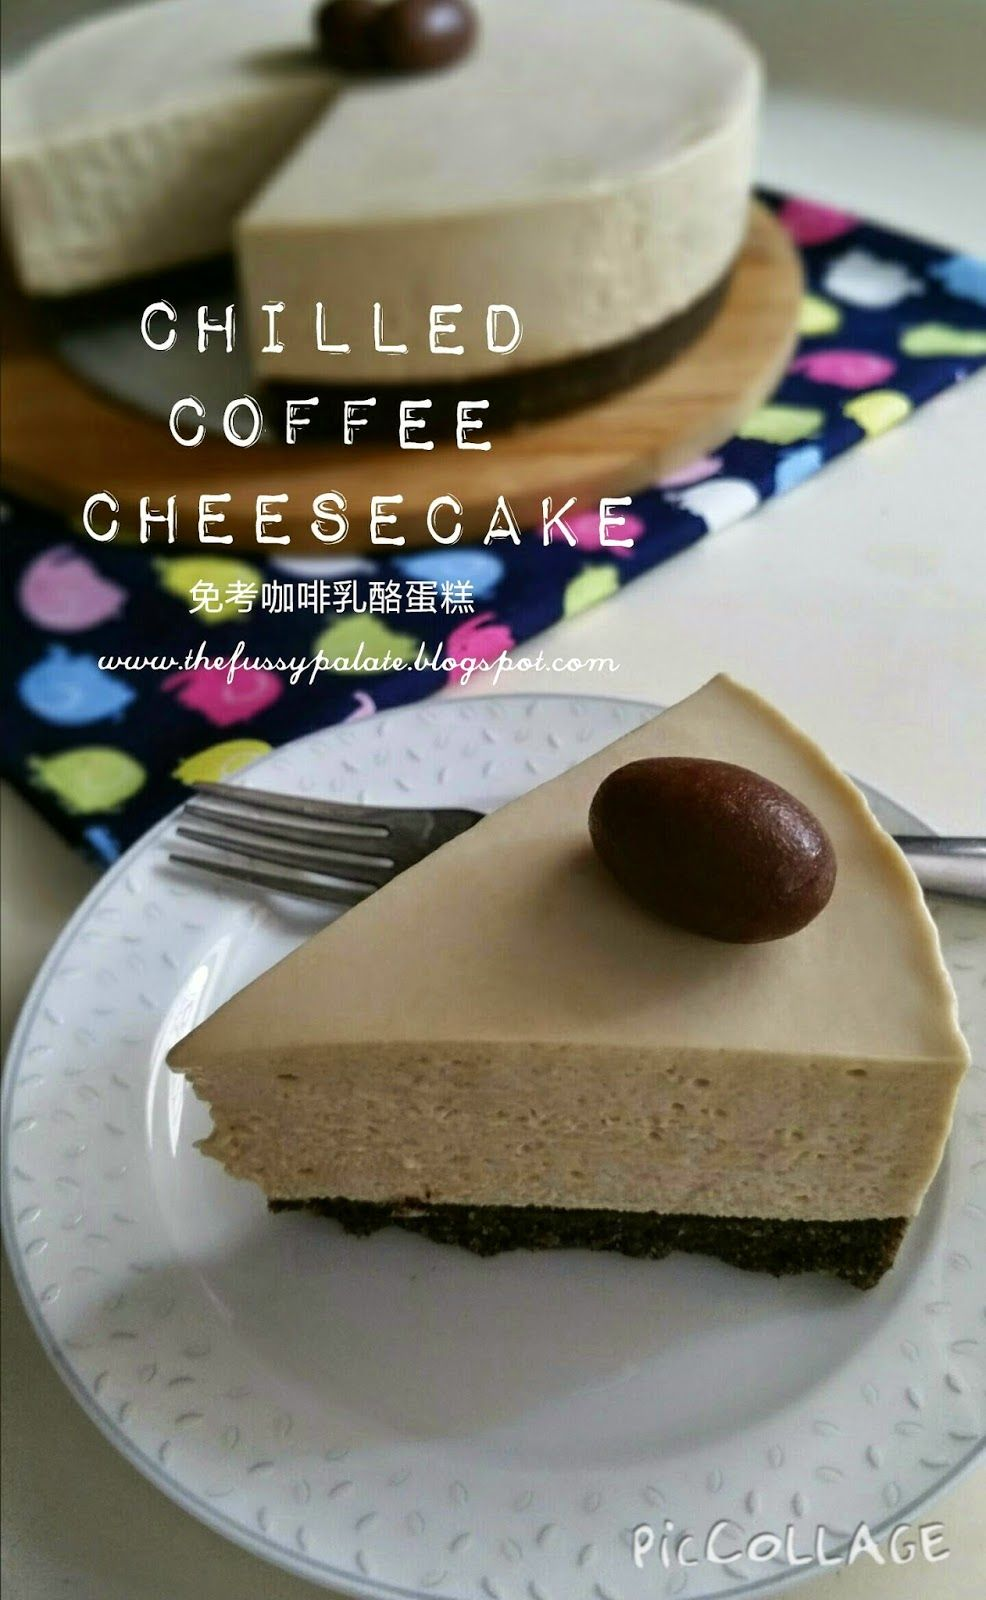 The Fussy Palate Chilled Coffee Cheesecake 免考咖啡乳酪蛋糕